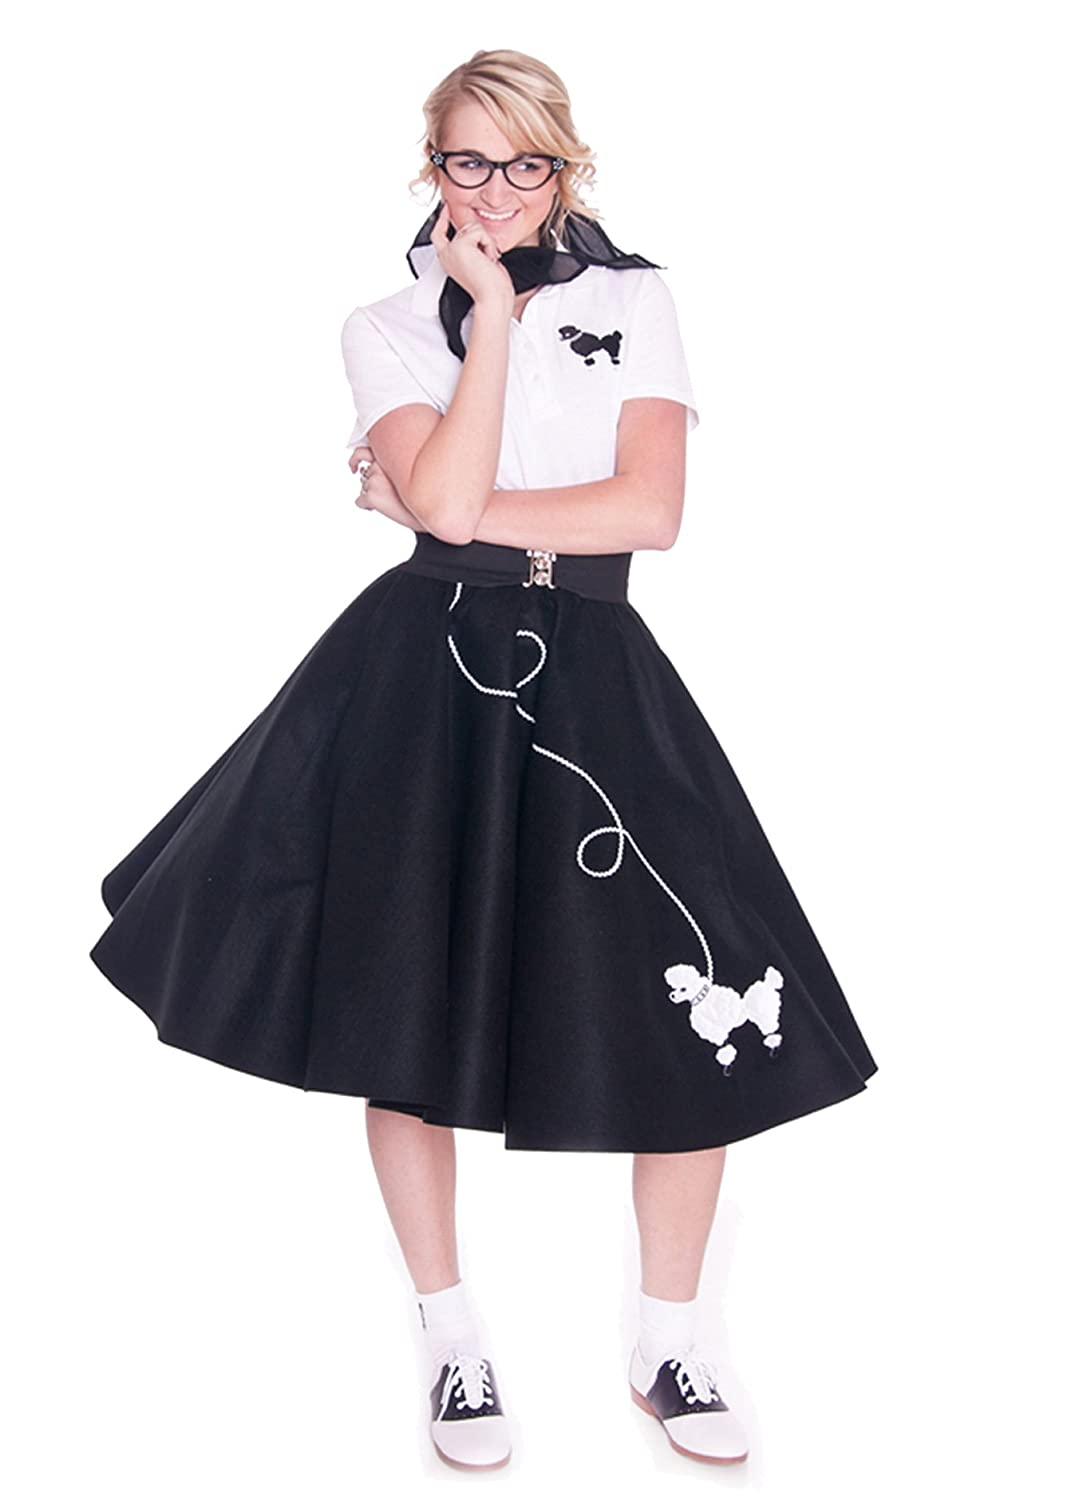 1950s costumes poodle skirts grease monroe pin up i love lucy